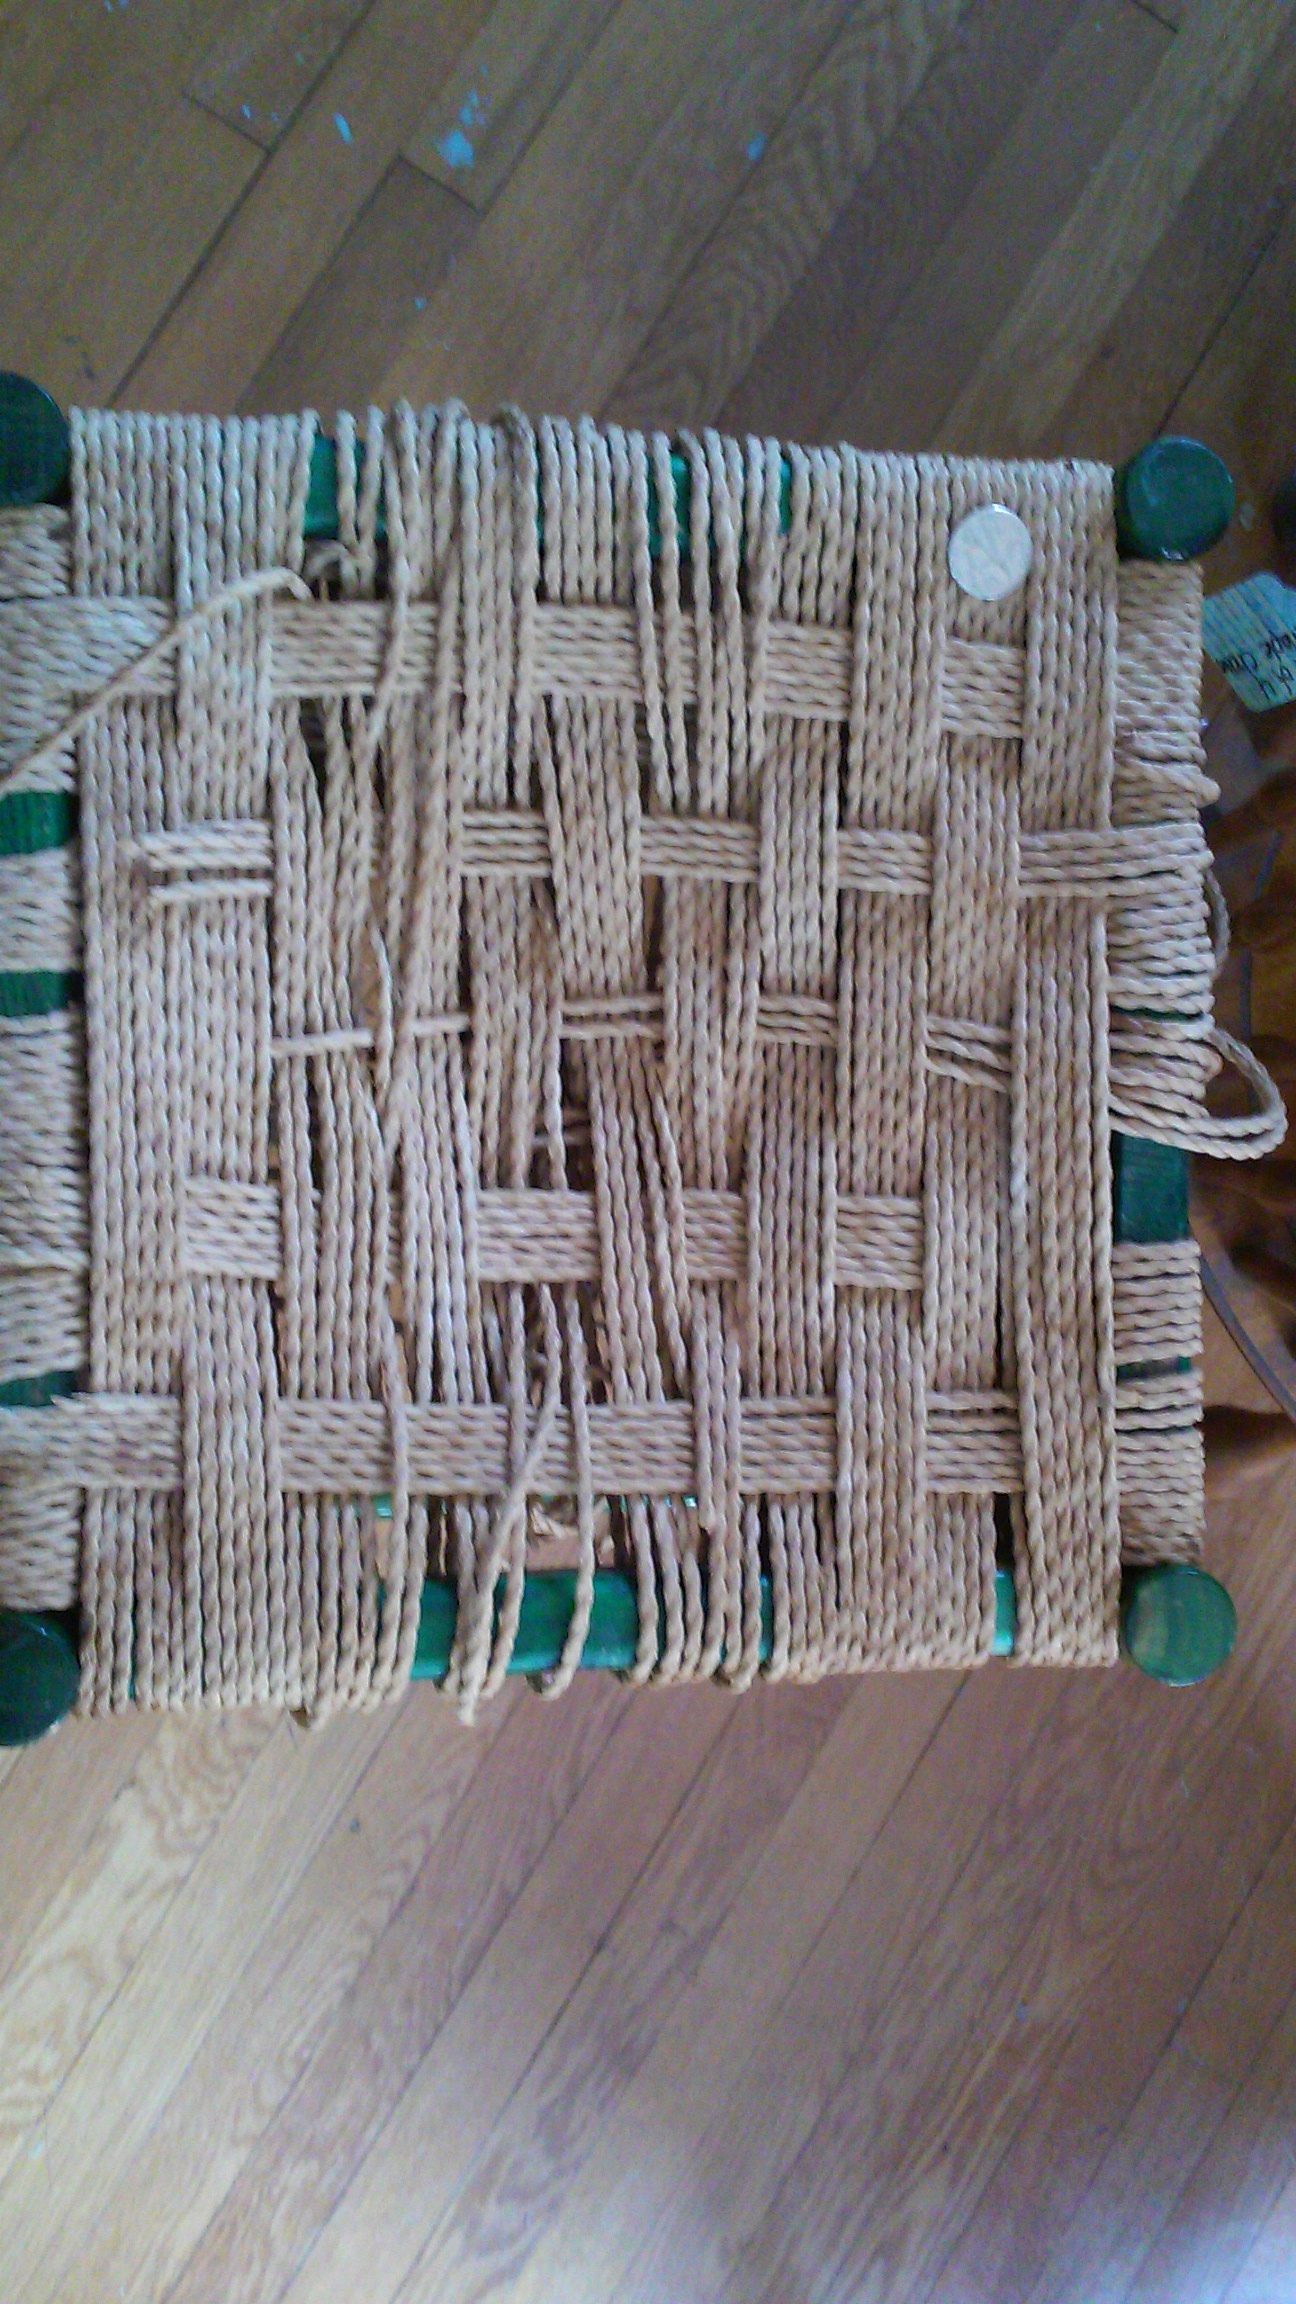 Danish Cord stool that has come unraveled